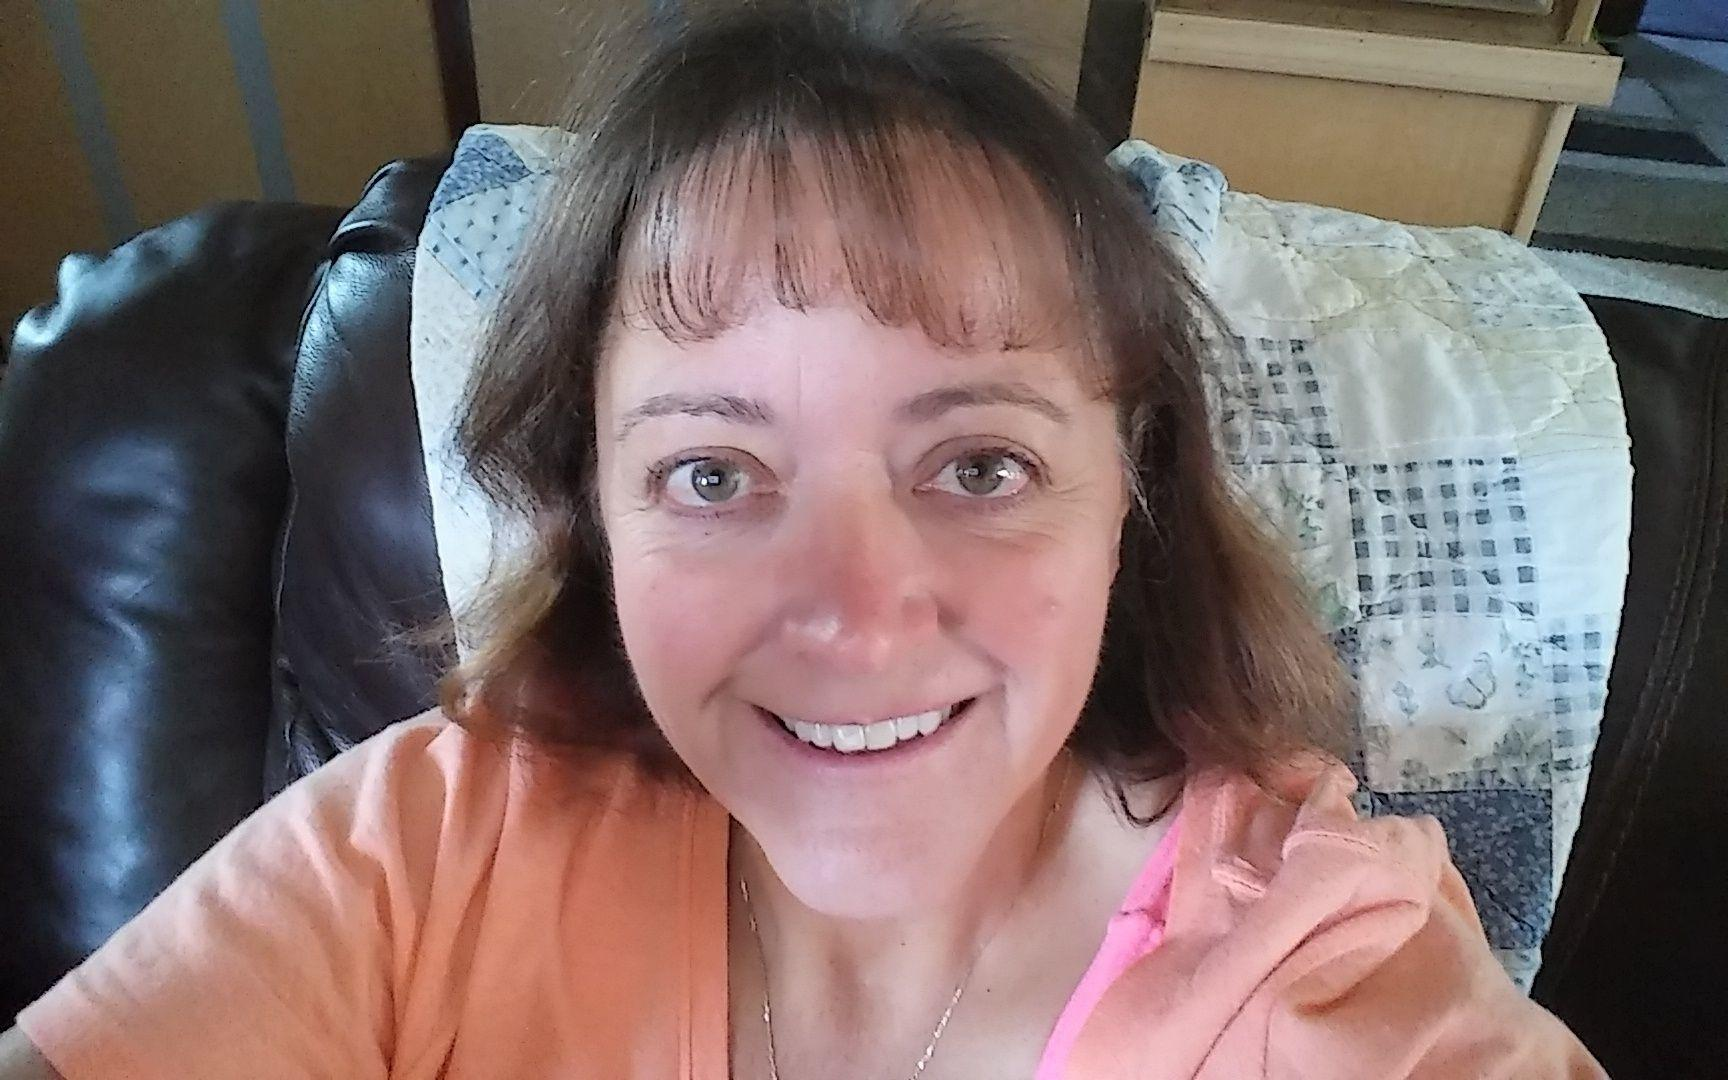 singles over 50 in arvada Black singles over 50  look through the listings of member members that have joined over 50 online dating that are associated with black talking to others who have like minded interests is a great way to find things to do once you are dating.